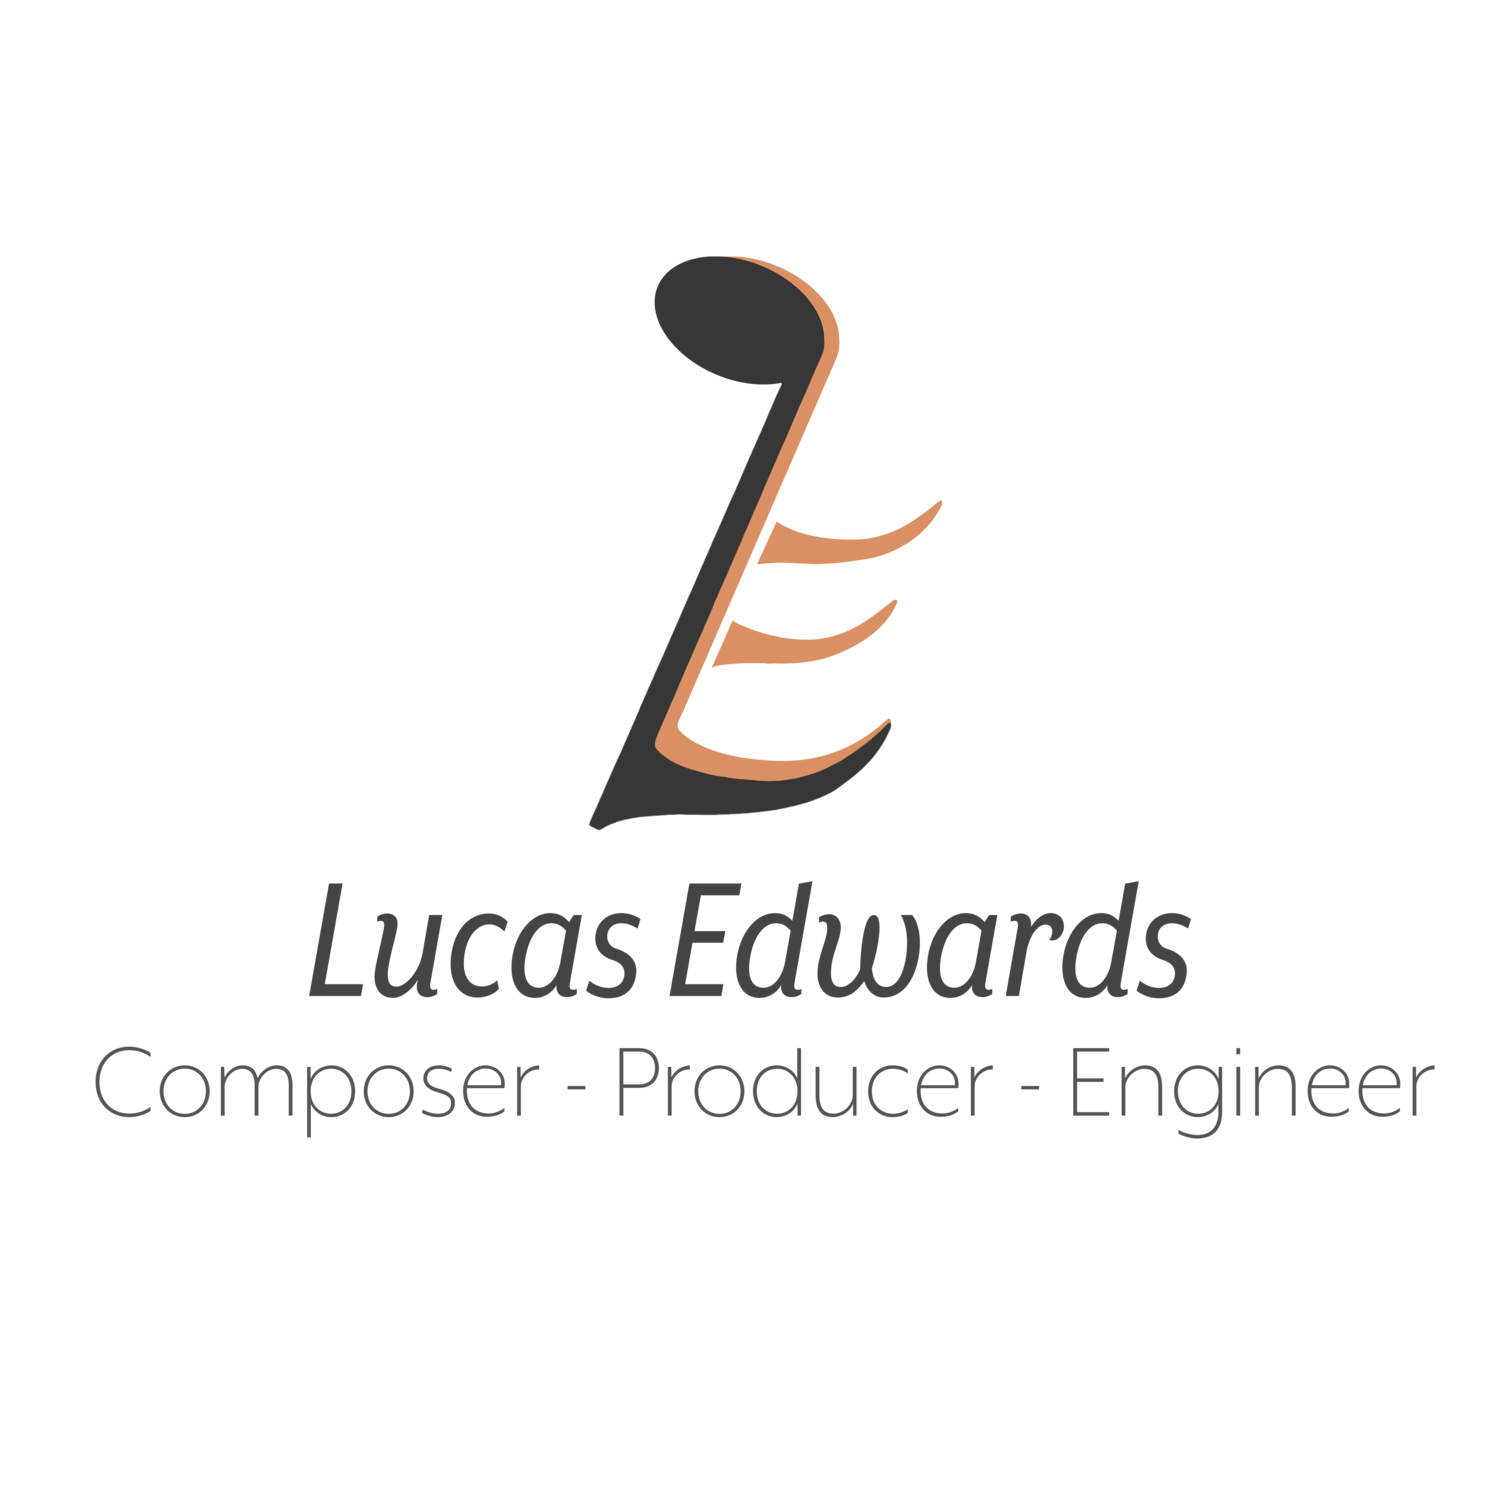 Lucas Edwards